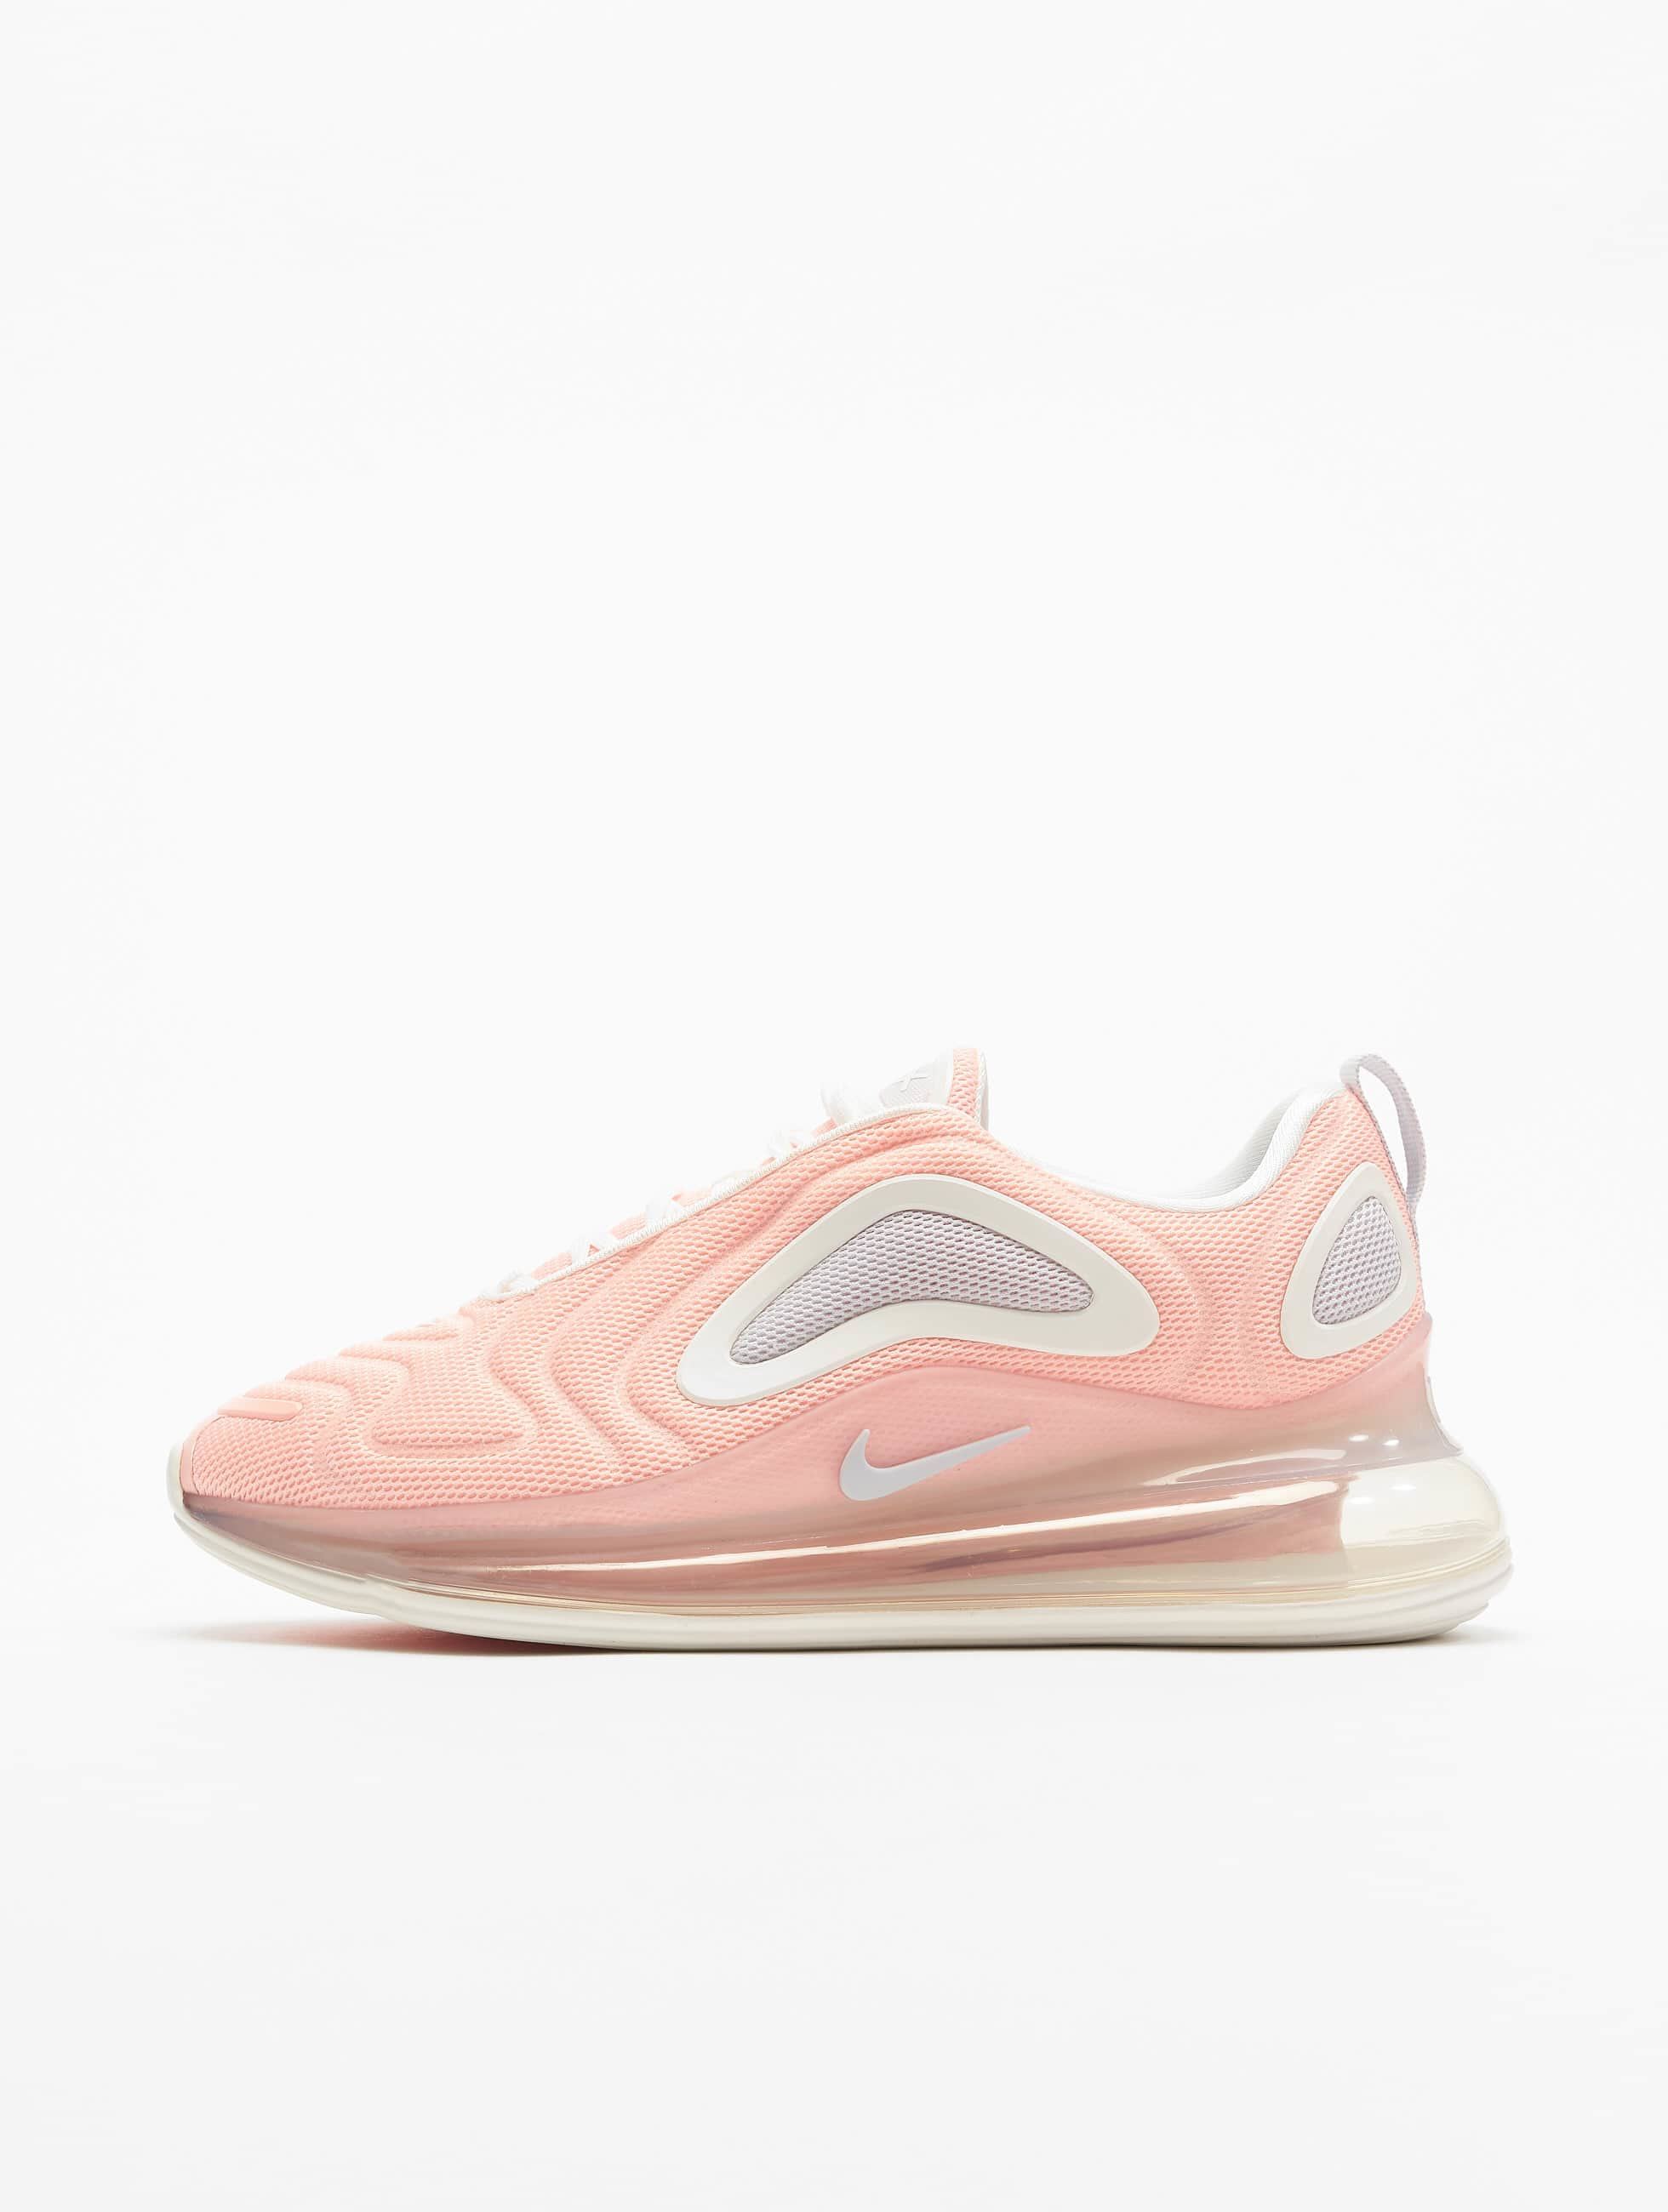 Nike Air Max 720 Sneakers Bleached CoralSummit White